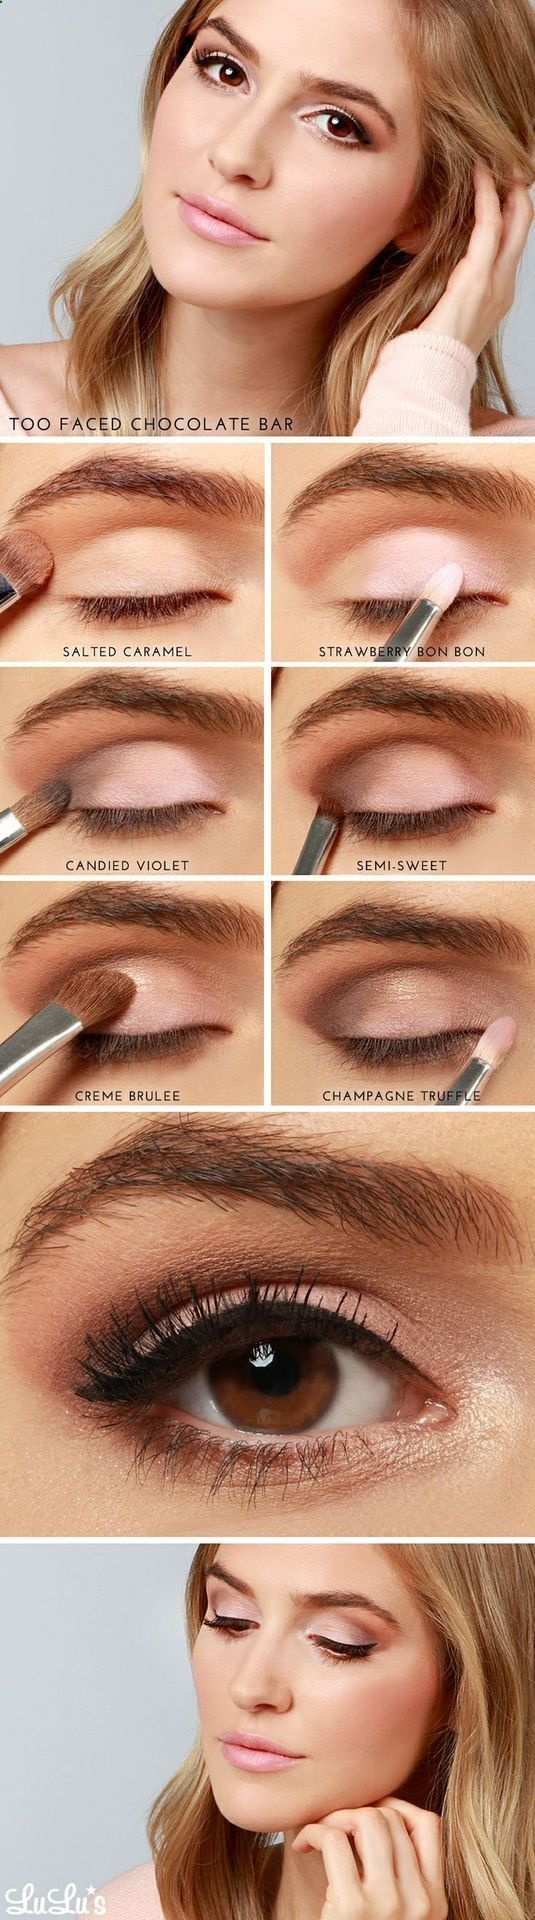 Too Faced Chocolate Bar. Soft day eye makeup tutorial #evatornadoblog | gnarlyhair.comgnarlyhair.com